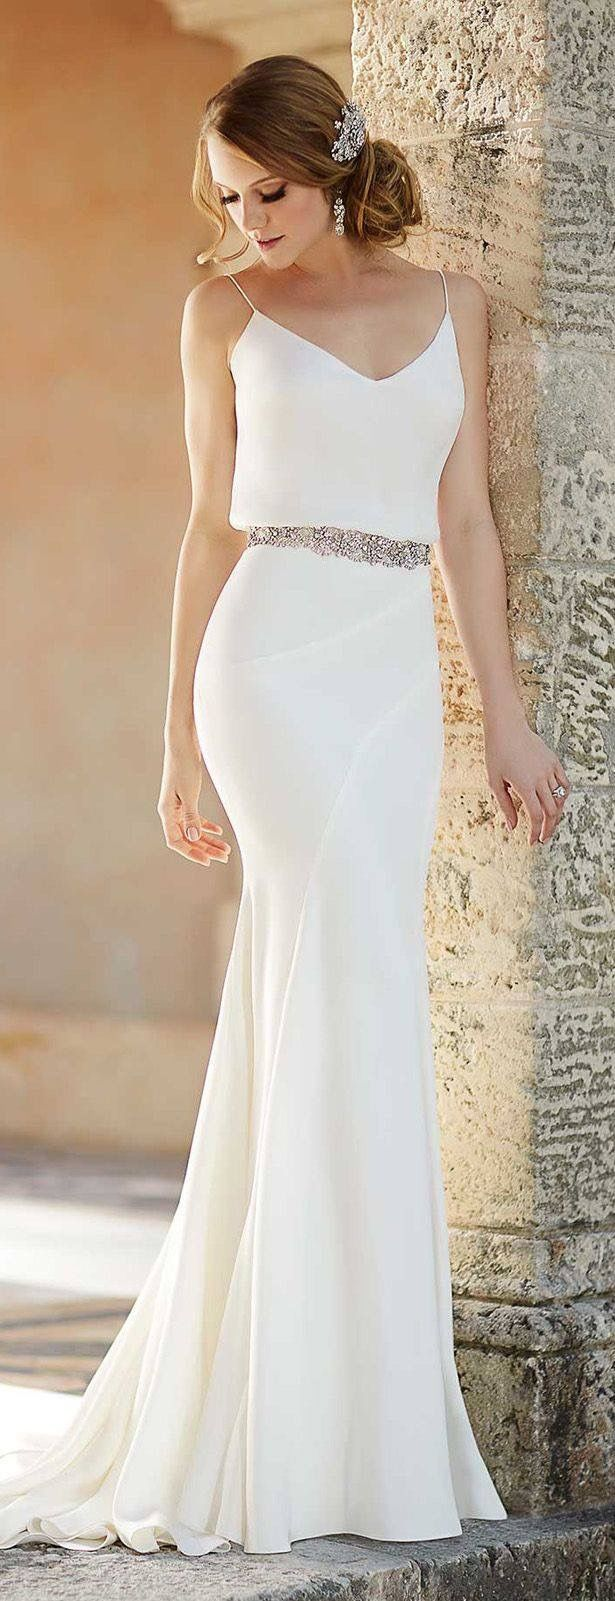 spring weddings white wedding dresses Excellent dress for a beach wedding or clean old Hollywood wedding